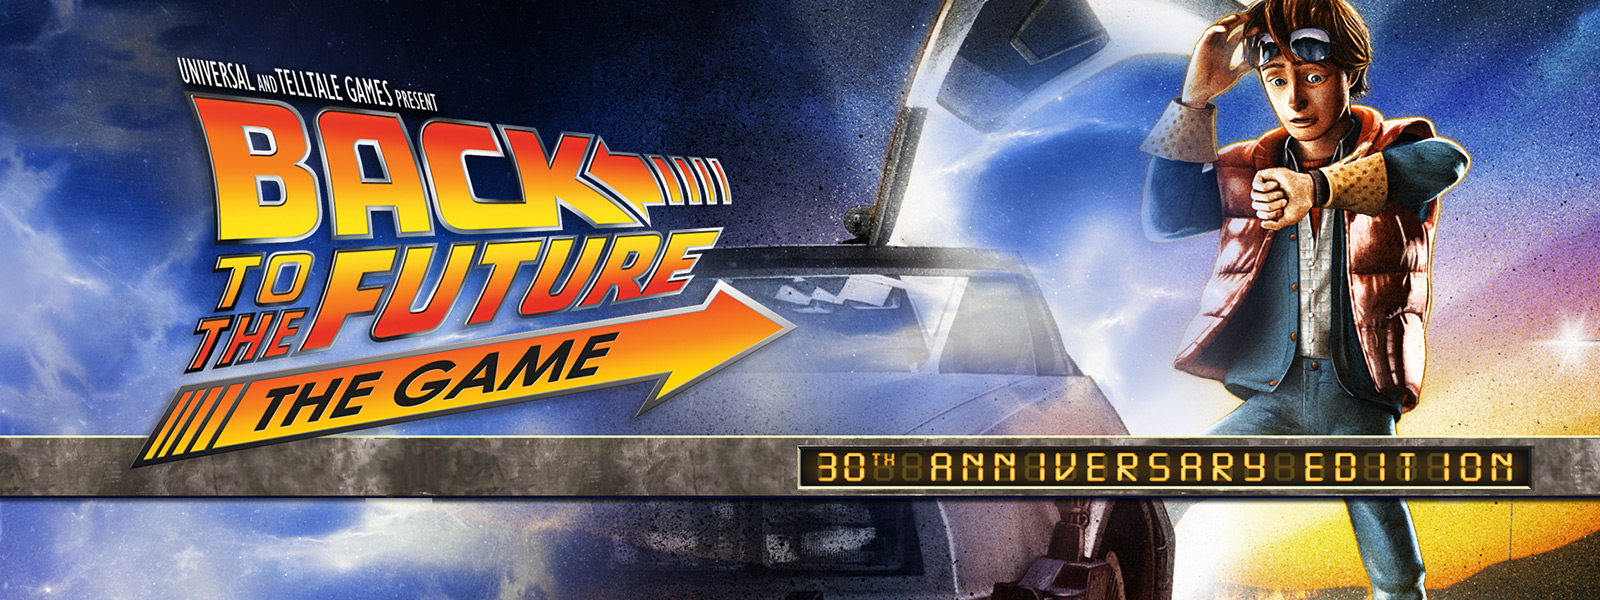 Back to the future 的 Marty McFly 與 DeLorean